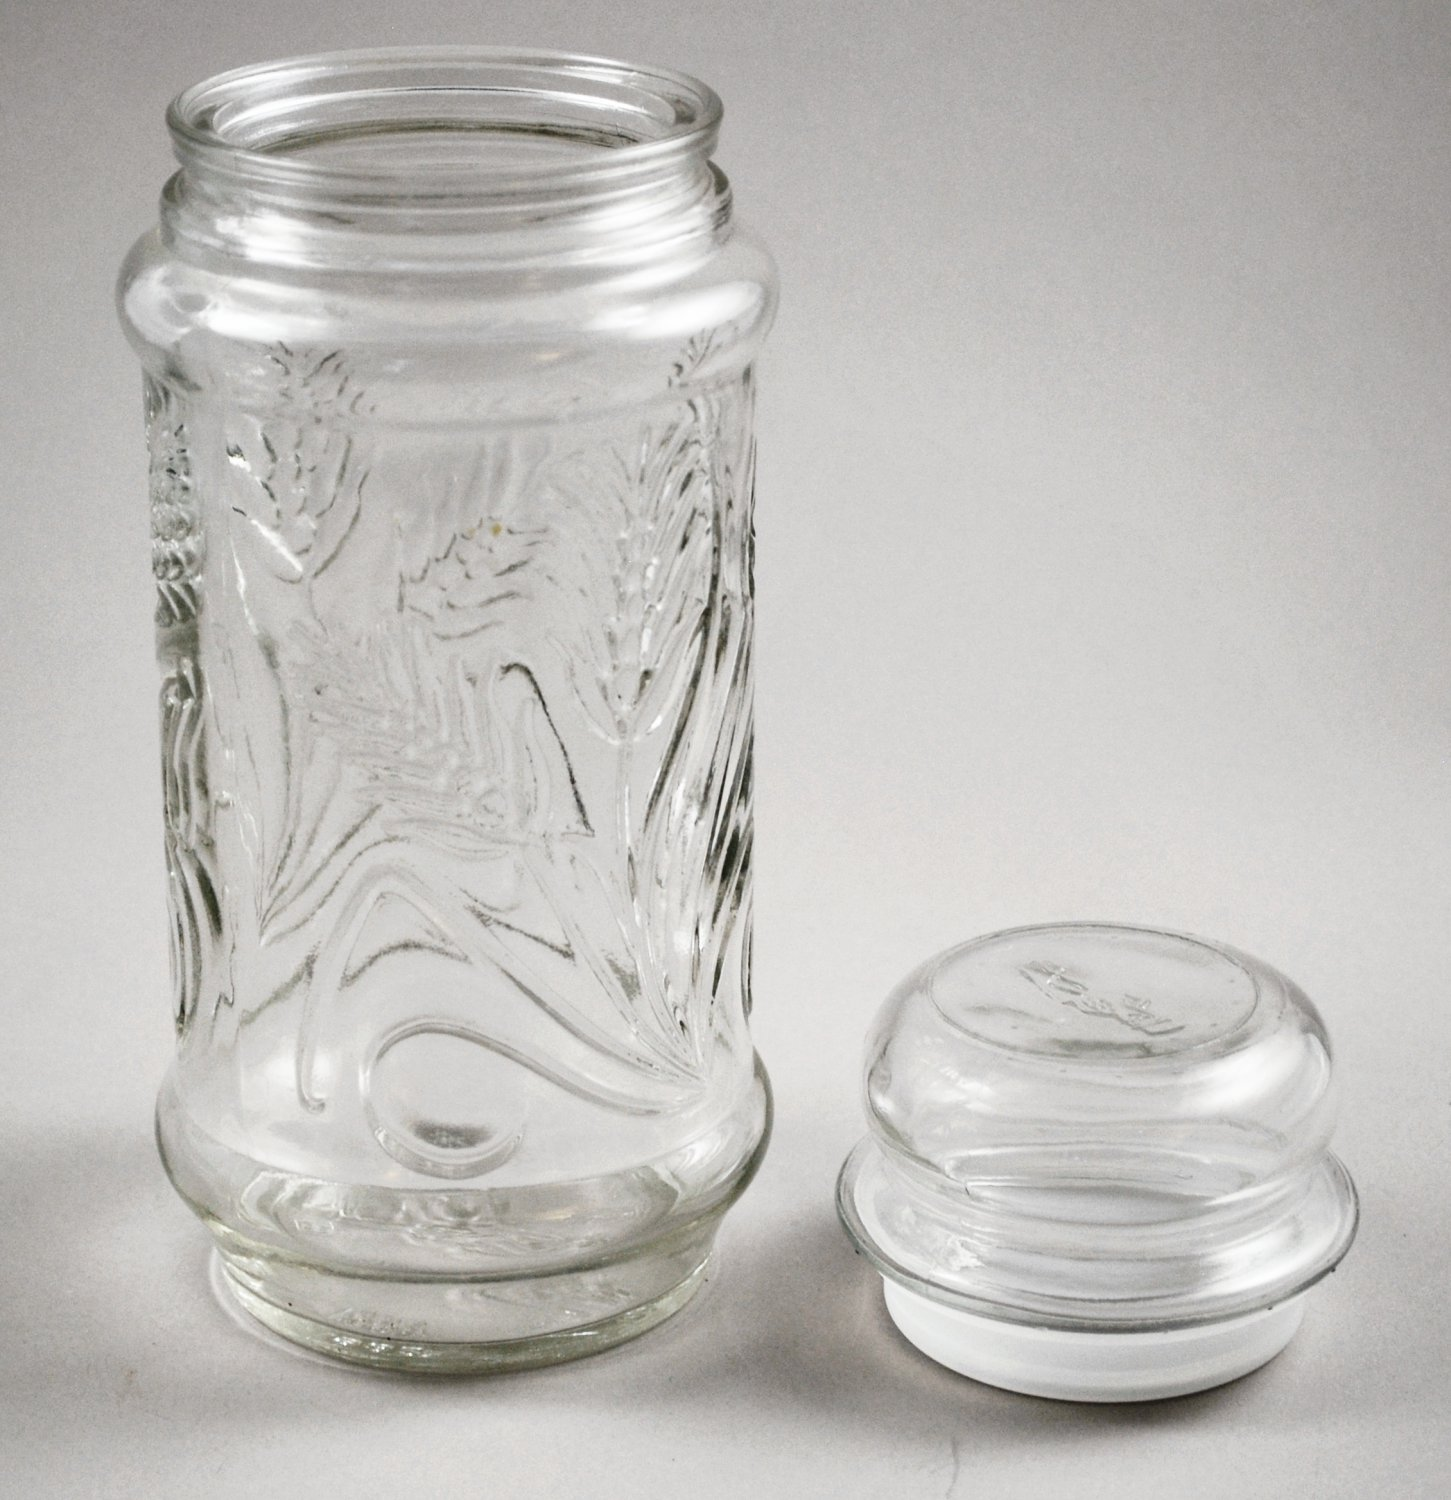 Anchor Hocking 1982 Mr. Peanut Planters Clear Glass Food Snack Canister Jar